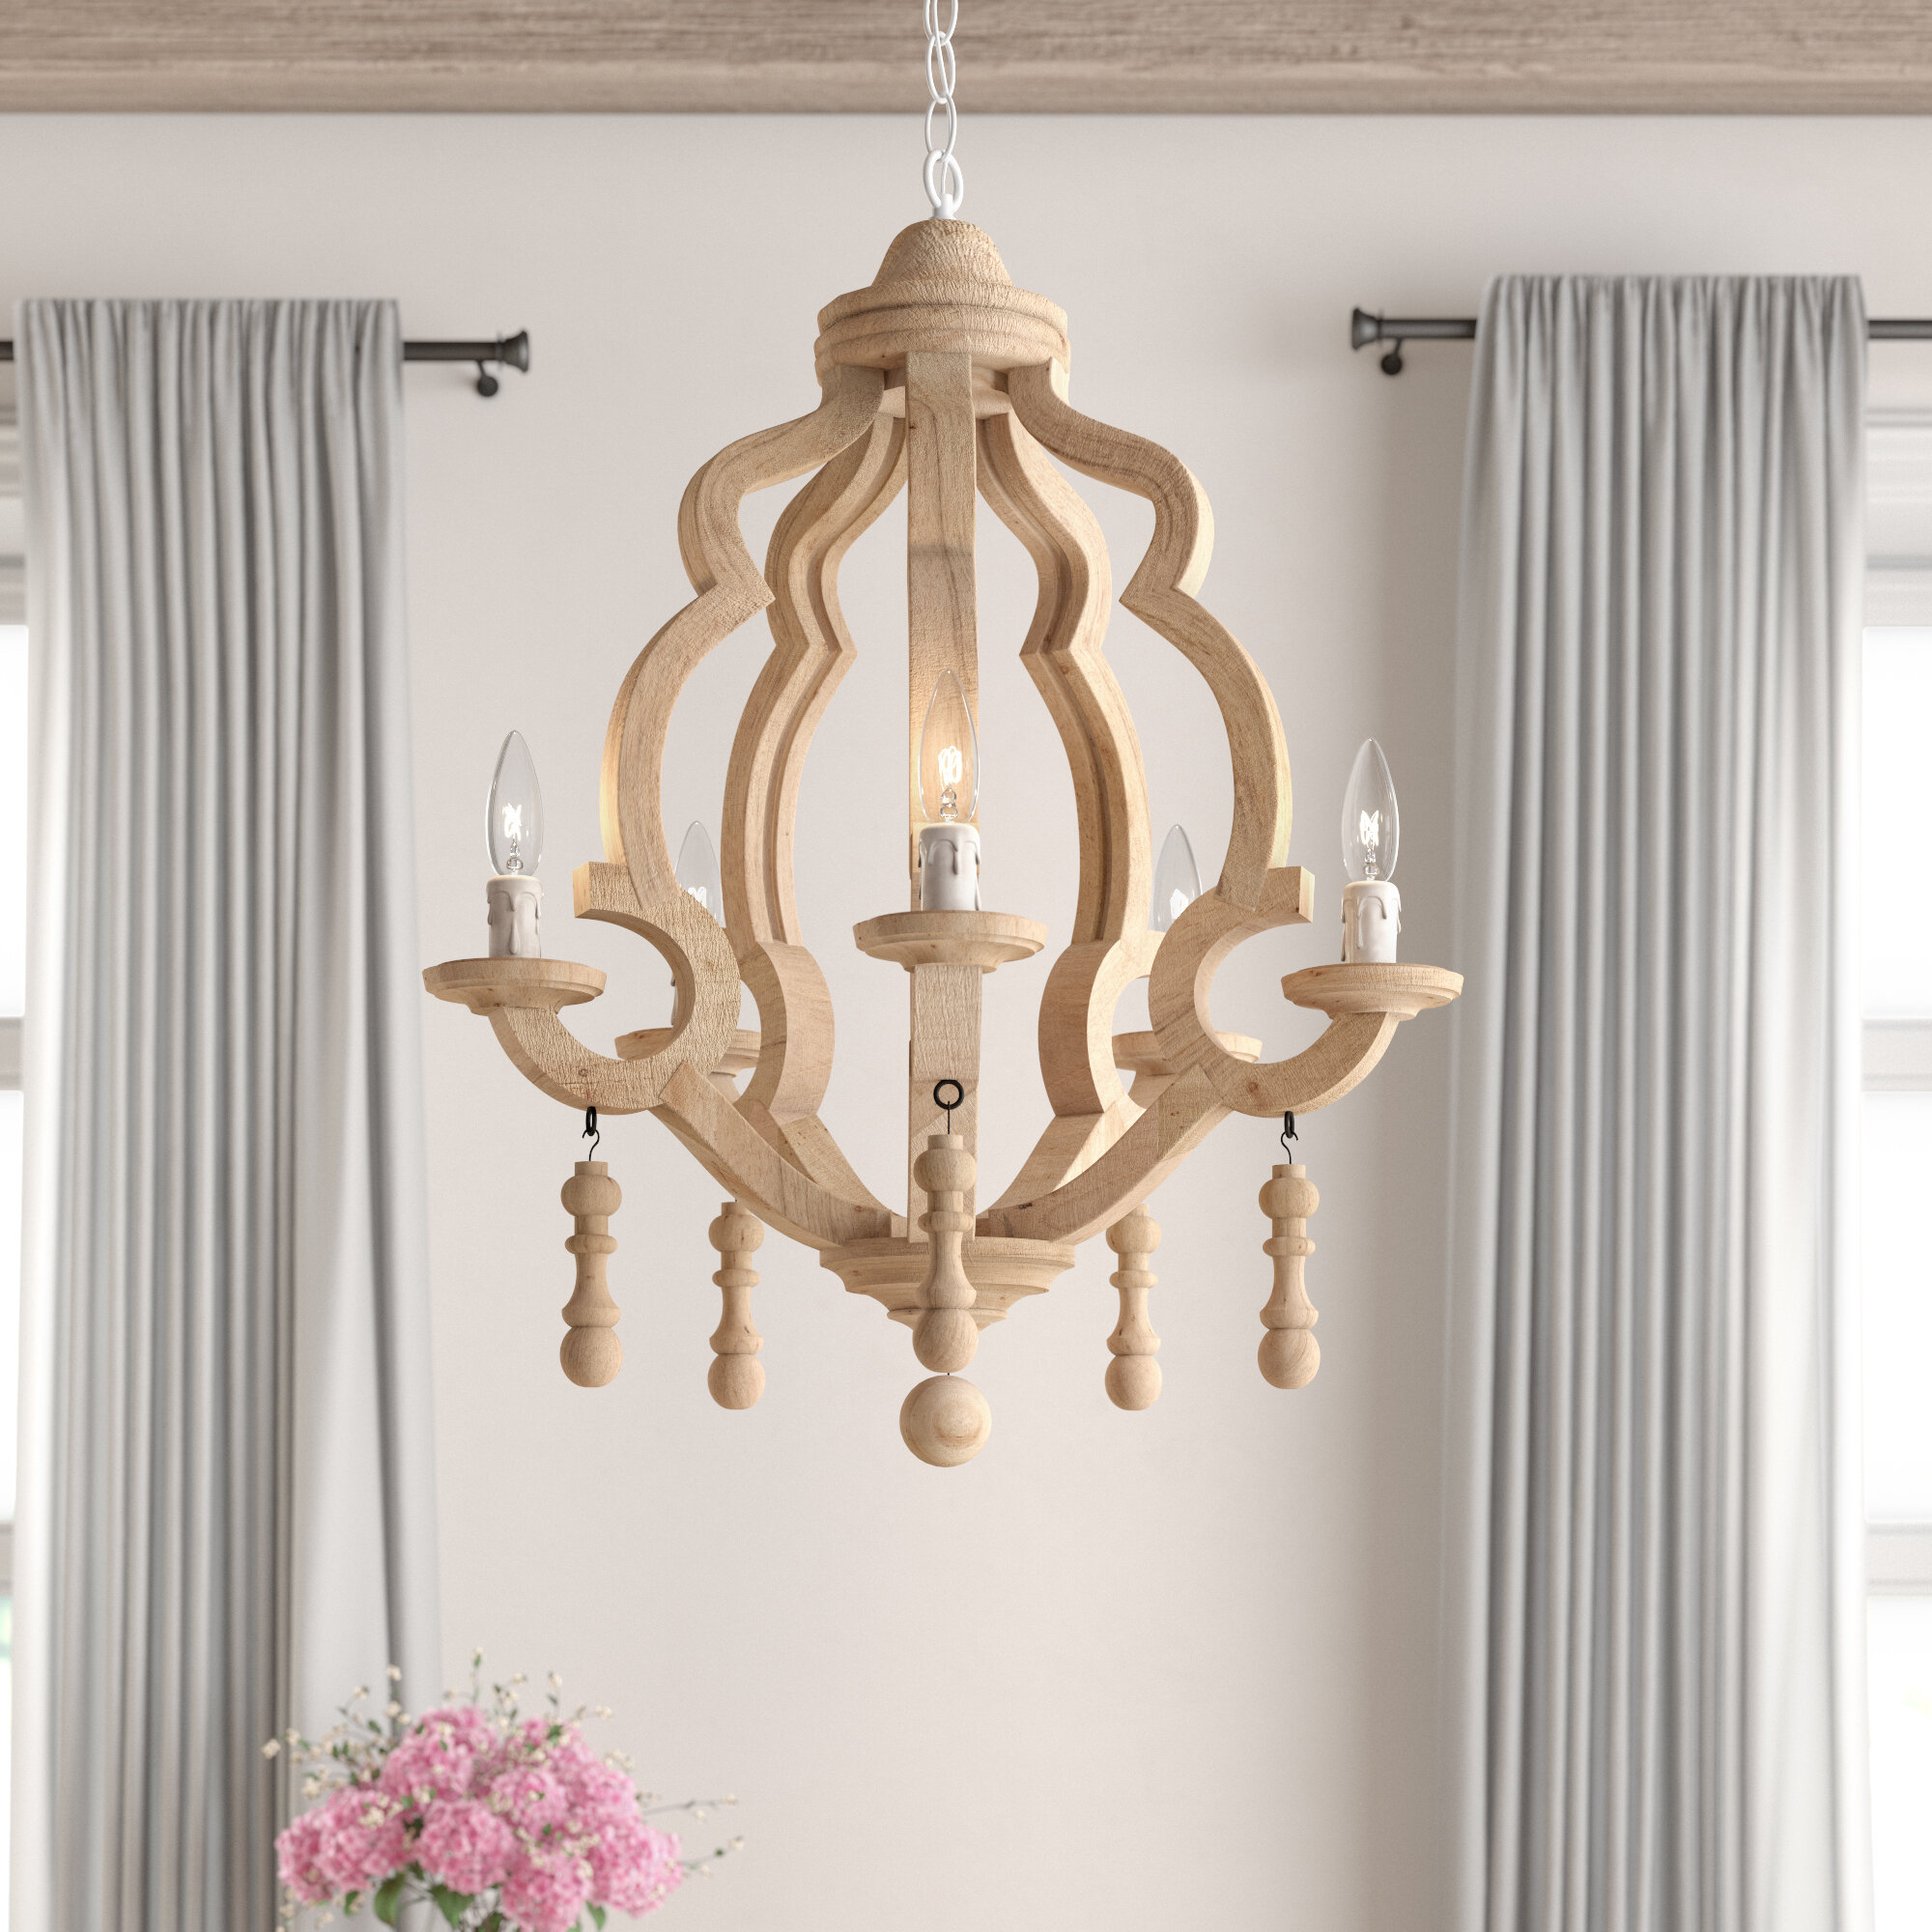 Kare 5 Light Chandelier & Reviews | Joss & Main In Duron 5 Light Empire Chandeliers (Photo 9 of 30)